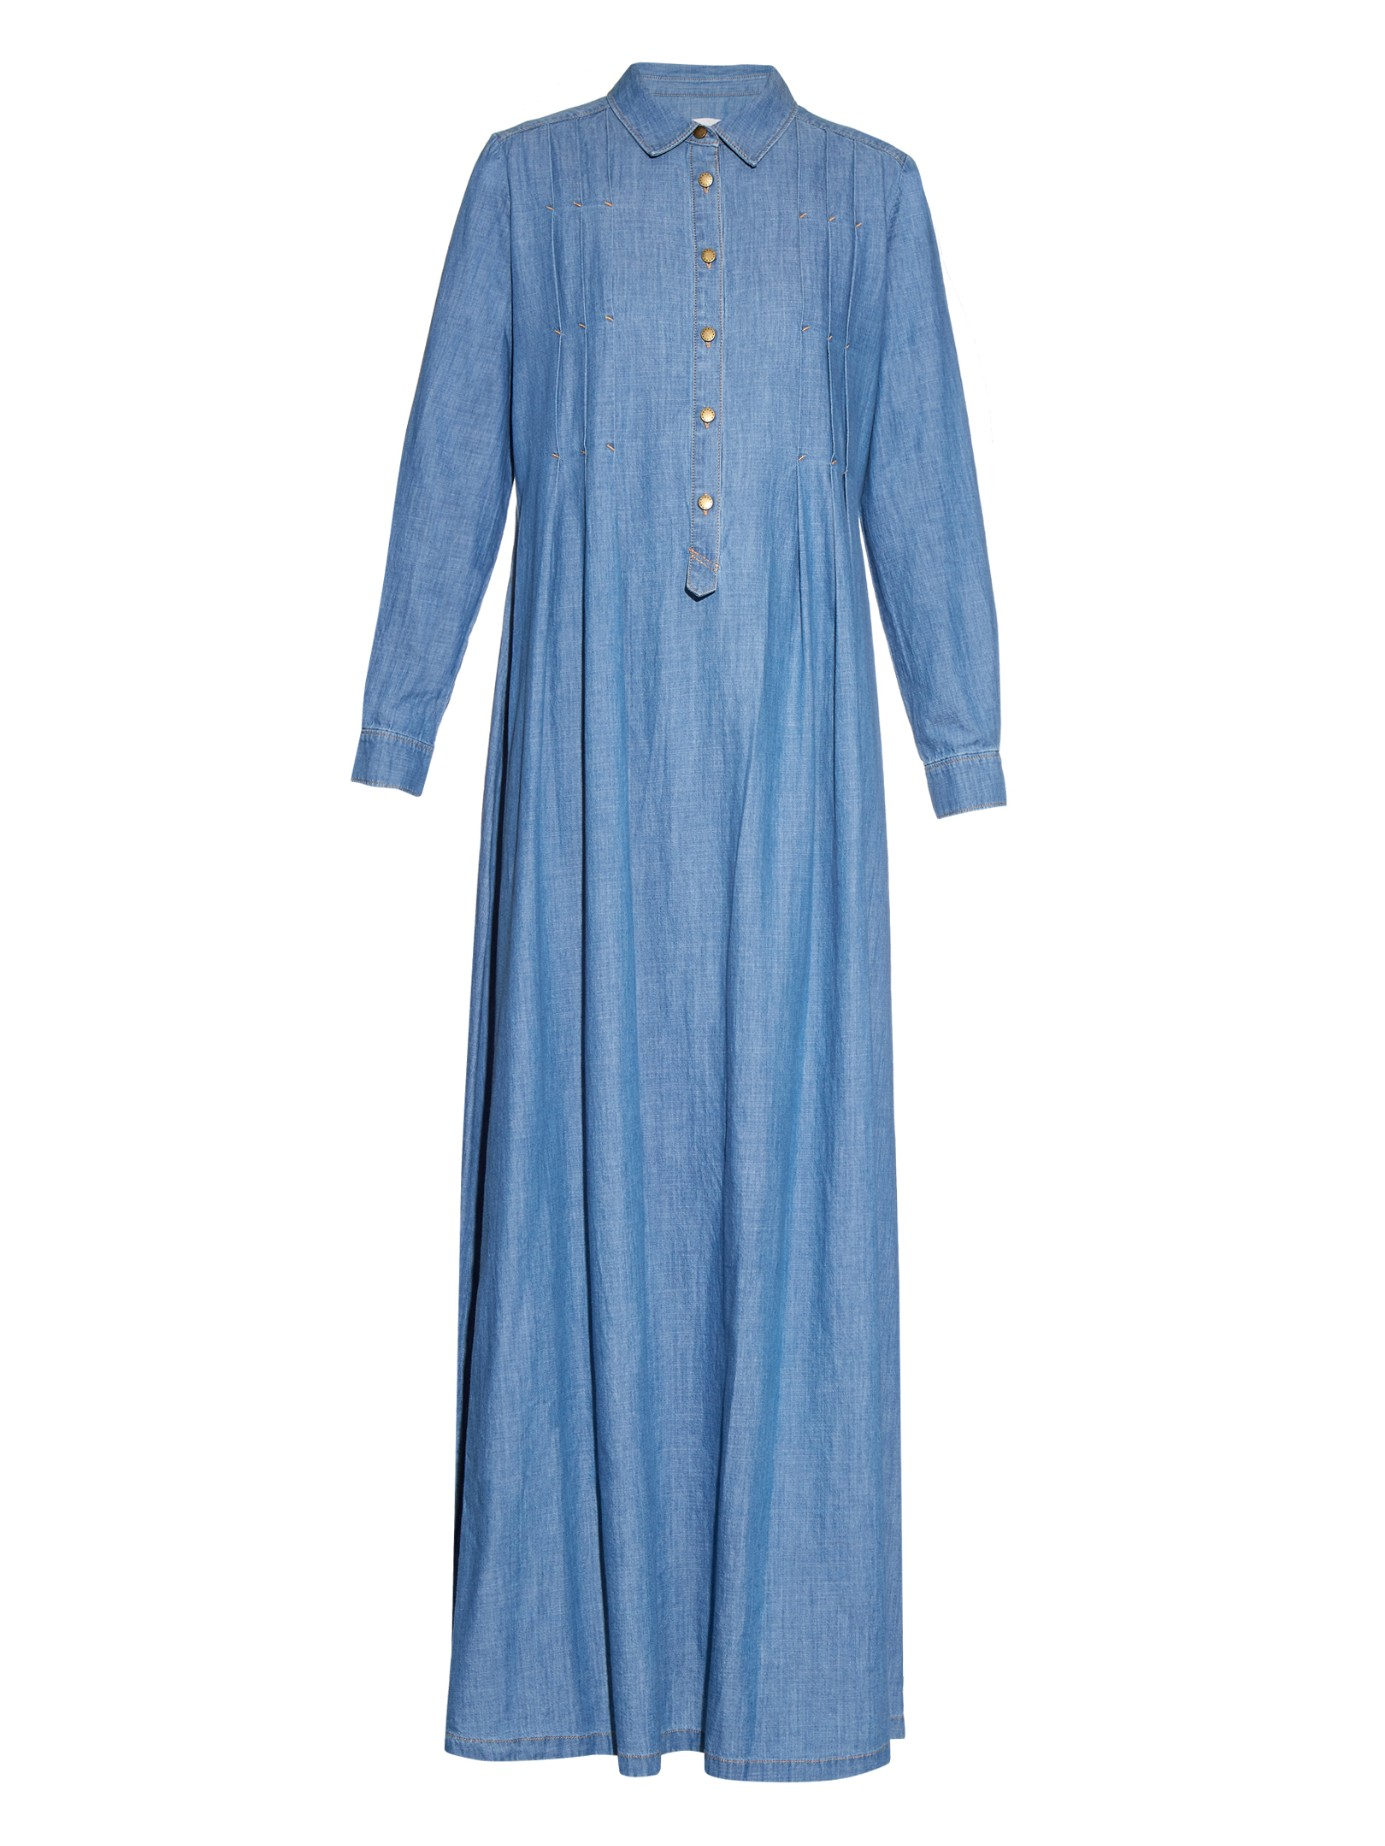 This dress is perfect for when you want to be comfy, yet fashionable. Perfect for those Summer outings like outdoor festivals or taking your kids to the playground.